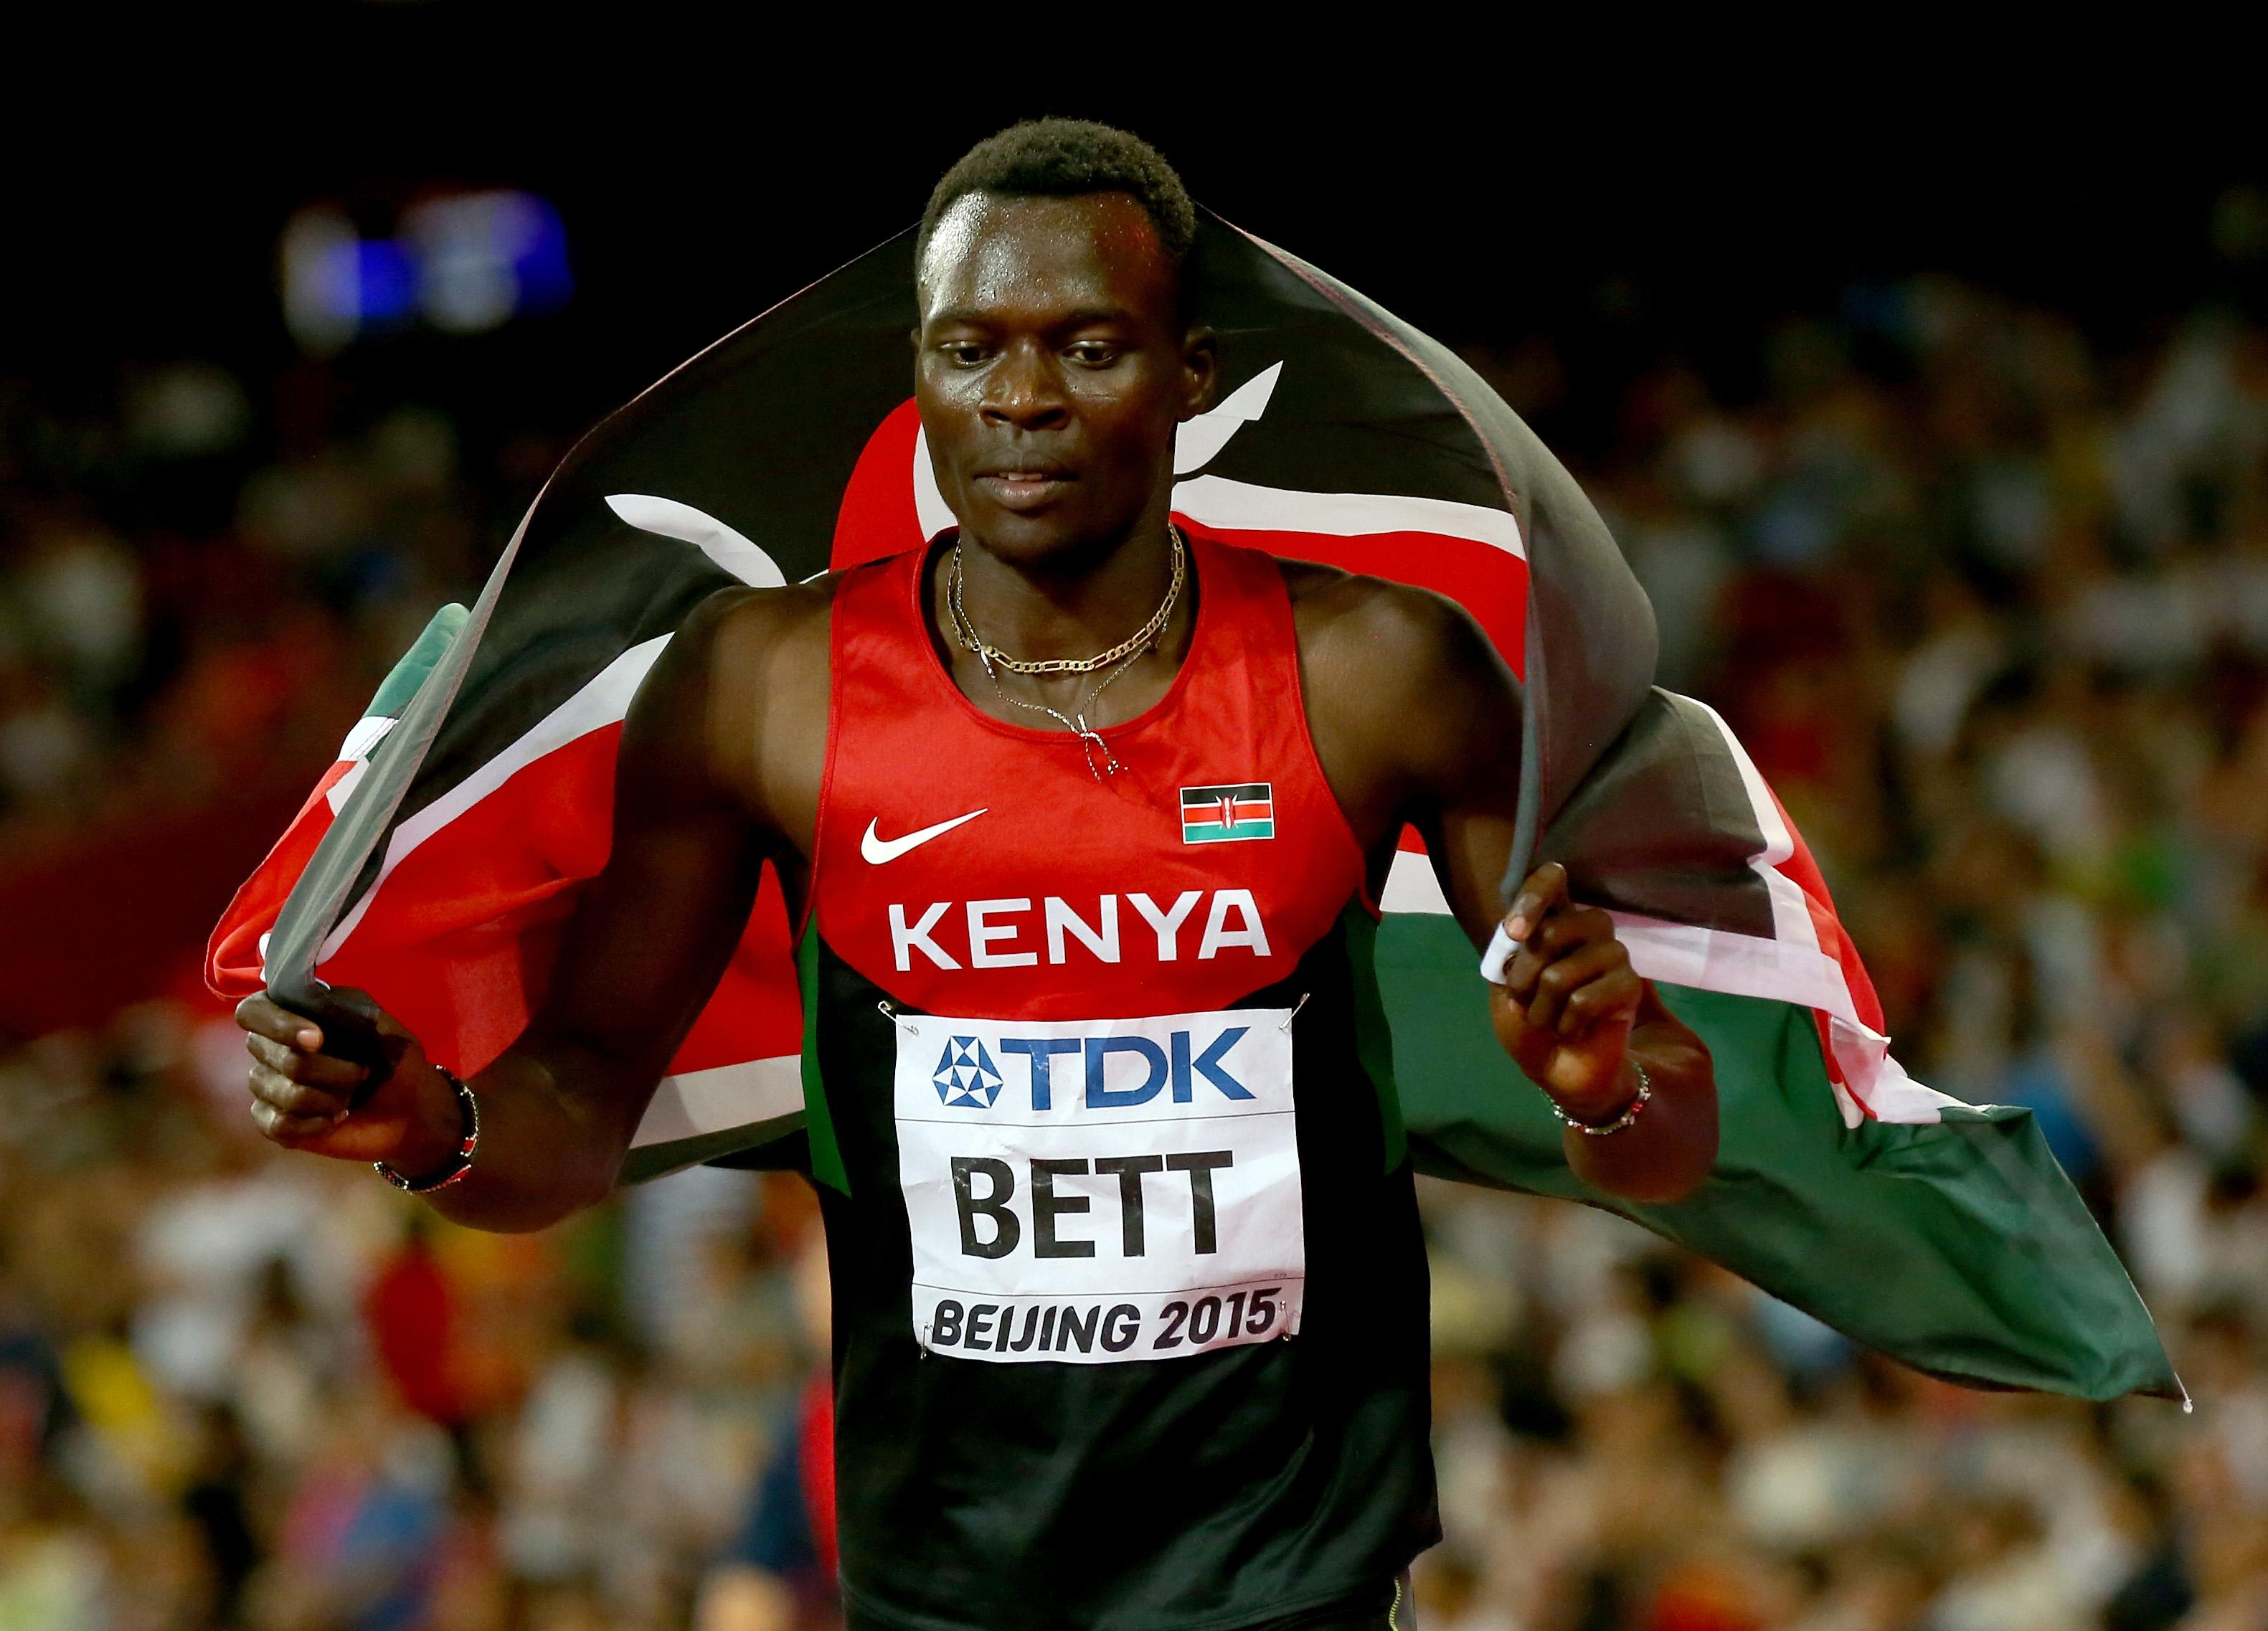 Nicholas Bett has been killed in a horrific car crash in his home country of Kenya